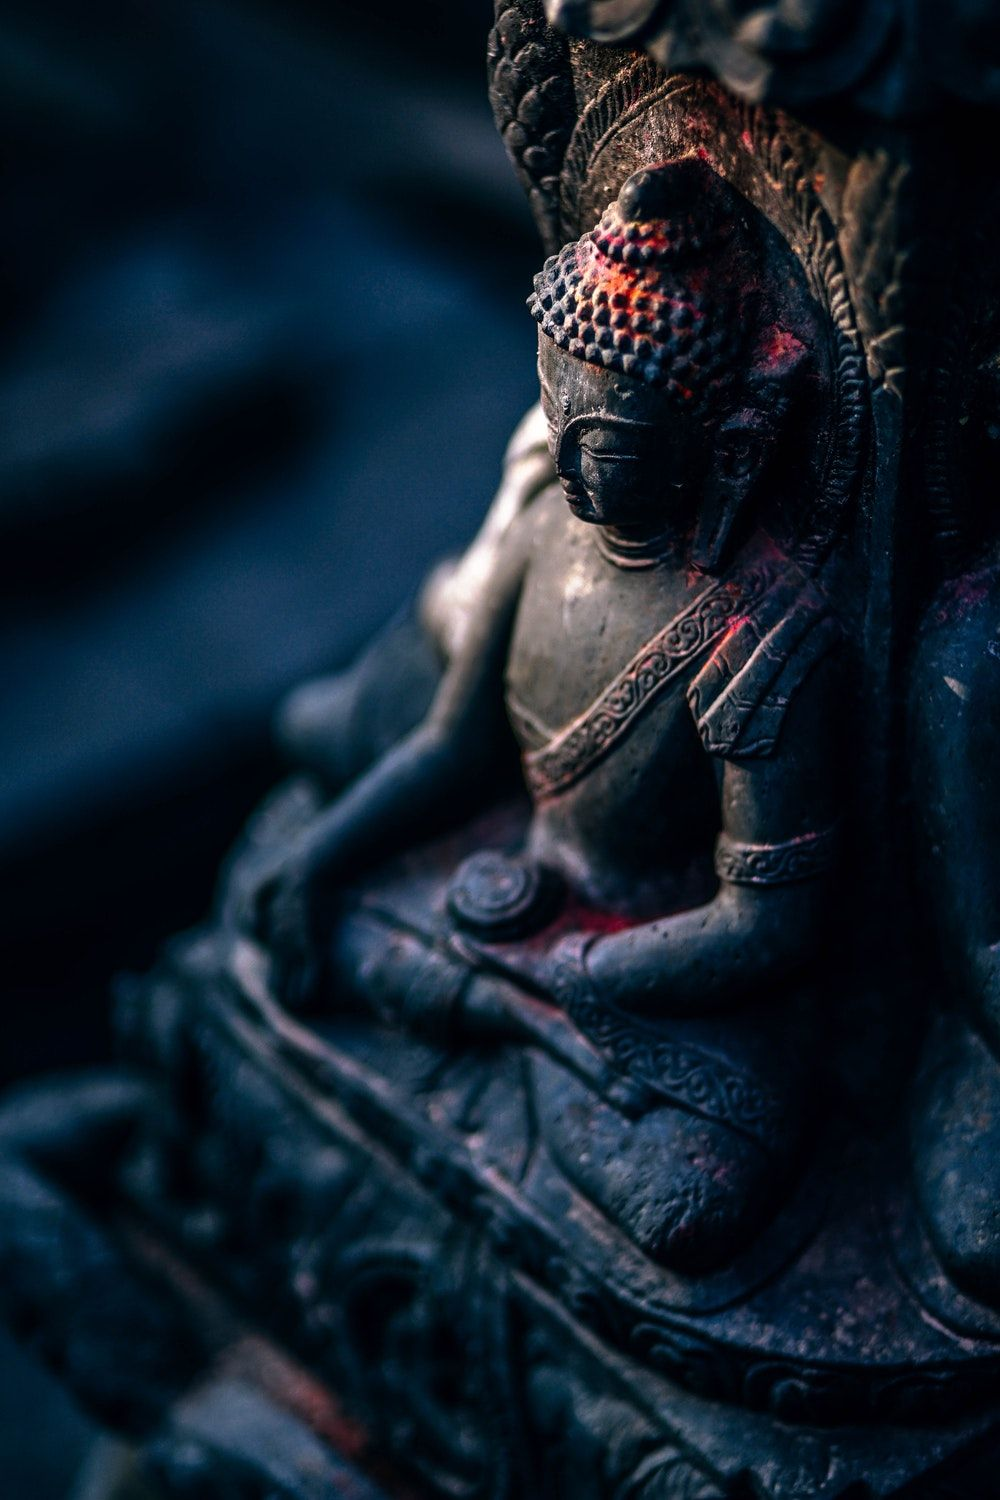 1000x1500 Buddha Pictures & Images [HQ] | Download Free Photos on Unsplash